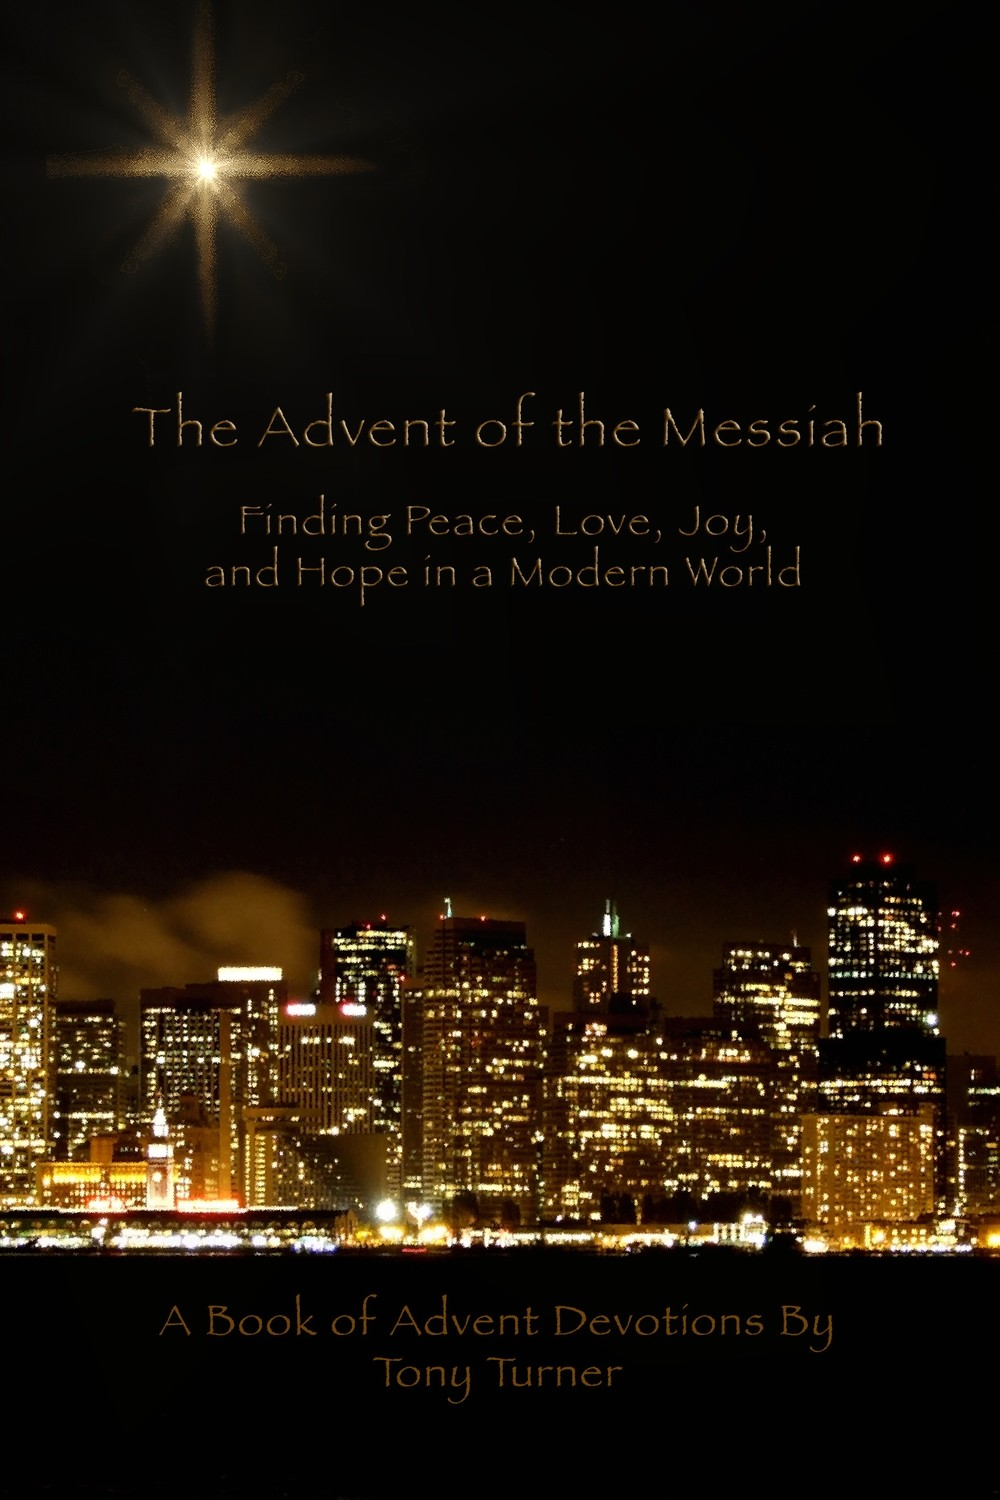 The Advent of the Messiah: Finding Peace, Love, Joy, and Hope in a Modern World (eBook)